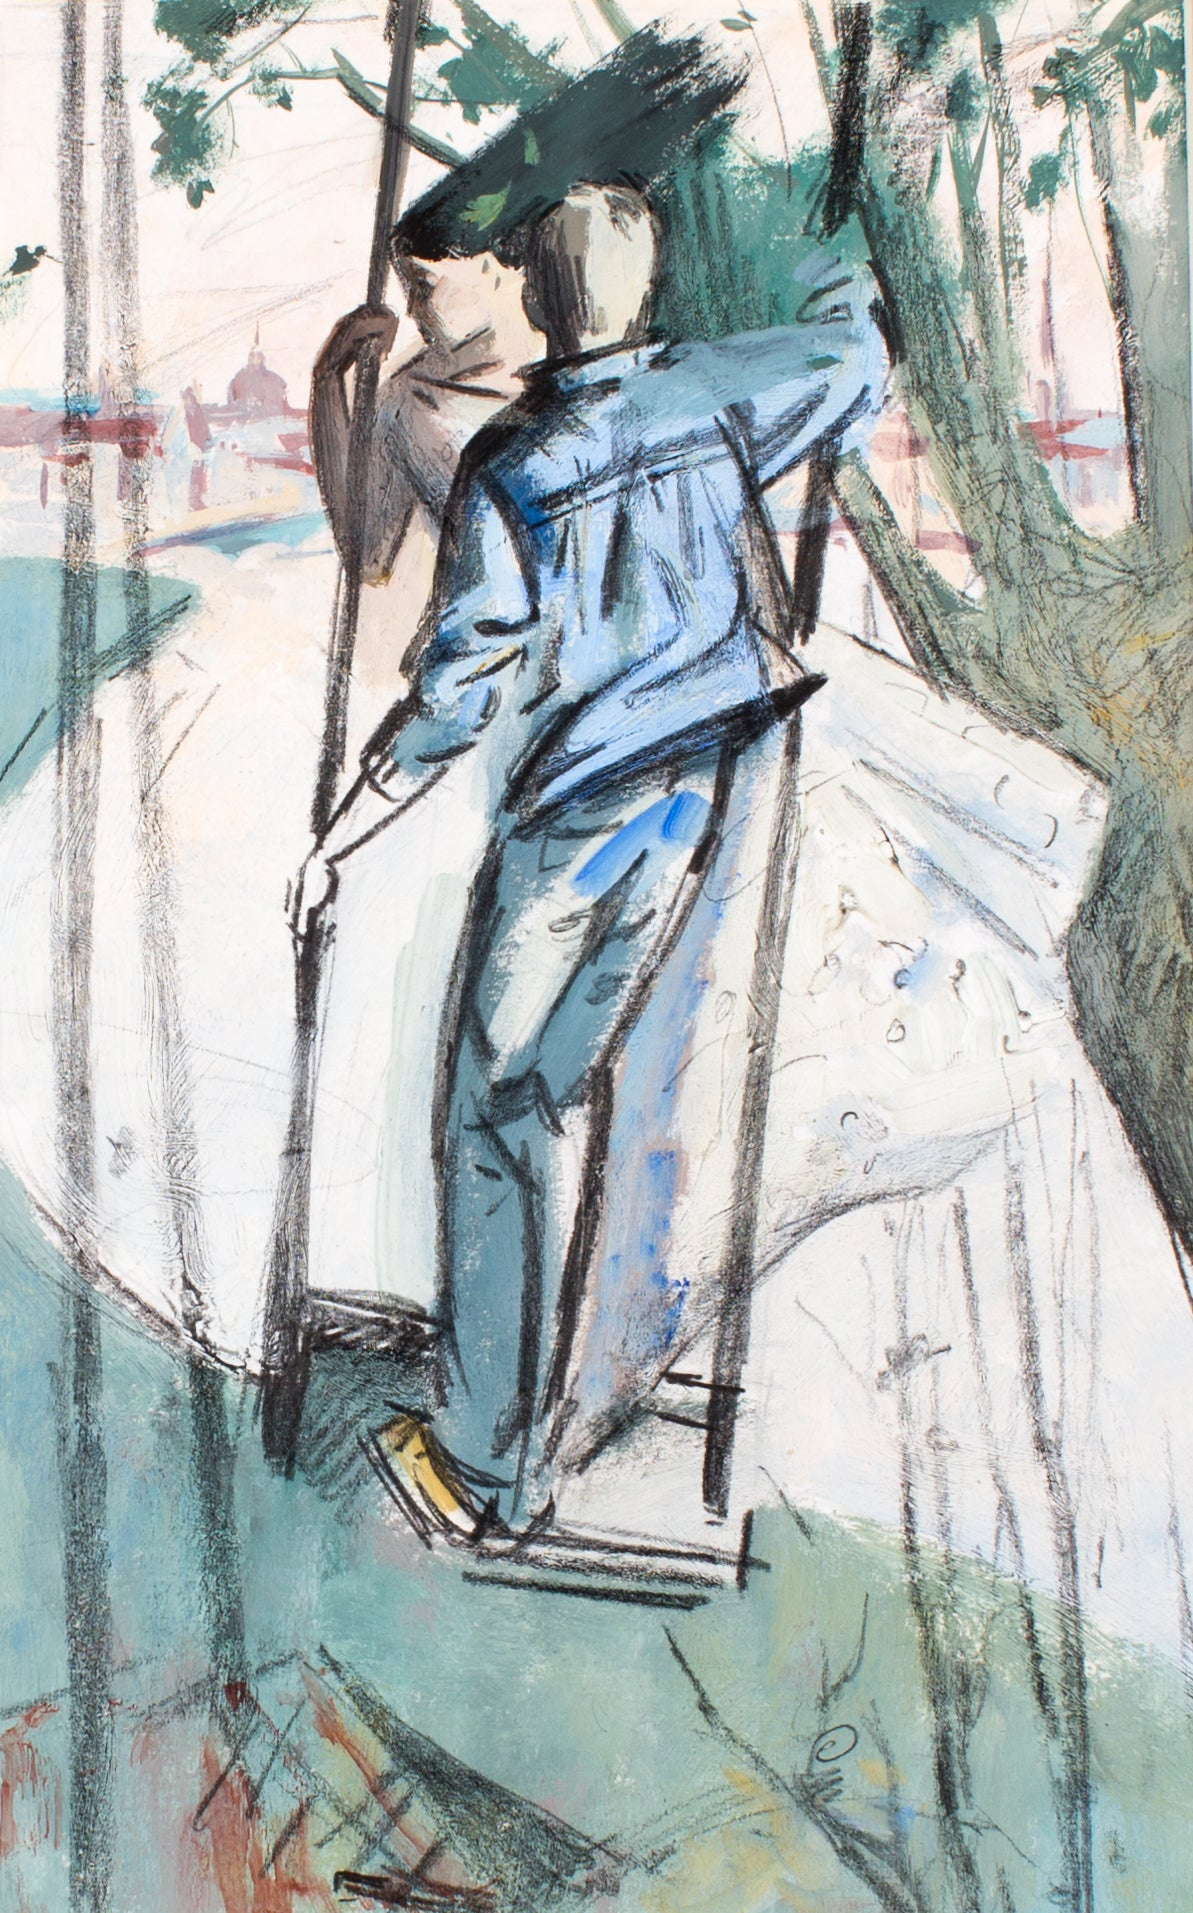 Swings by Nadezda Vorontsova, 31.5cm*41cm, tempera painting